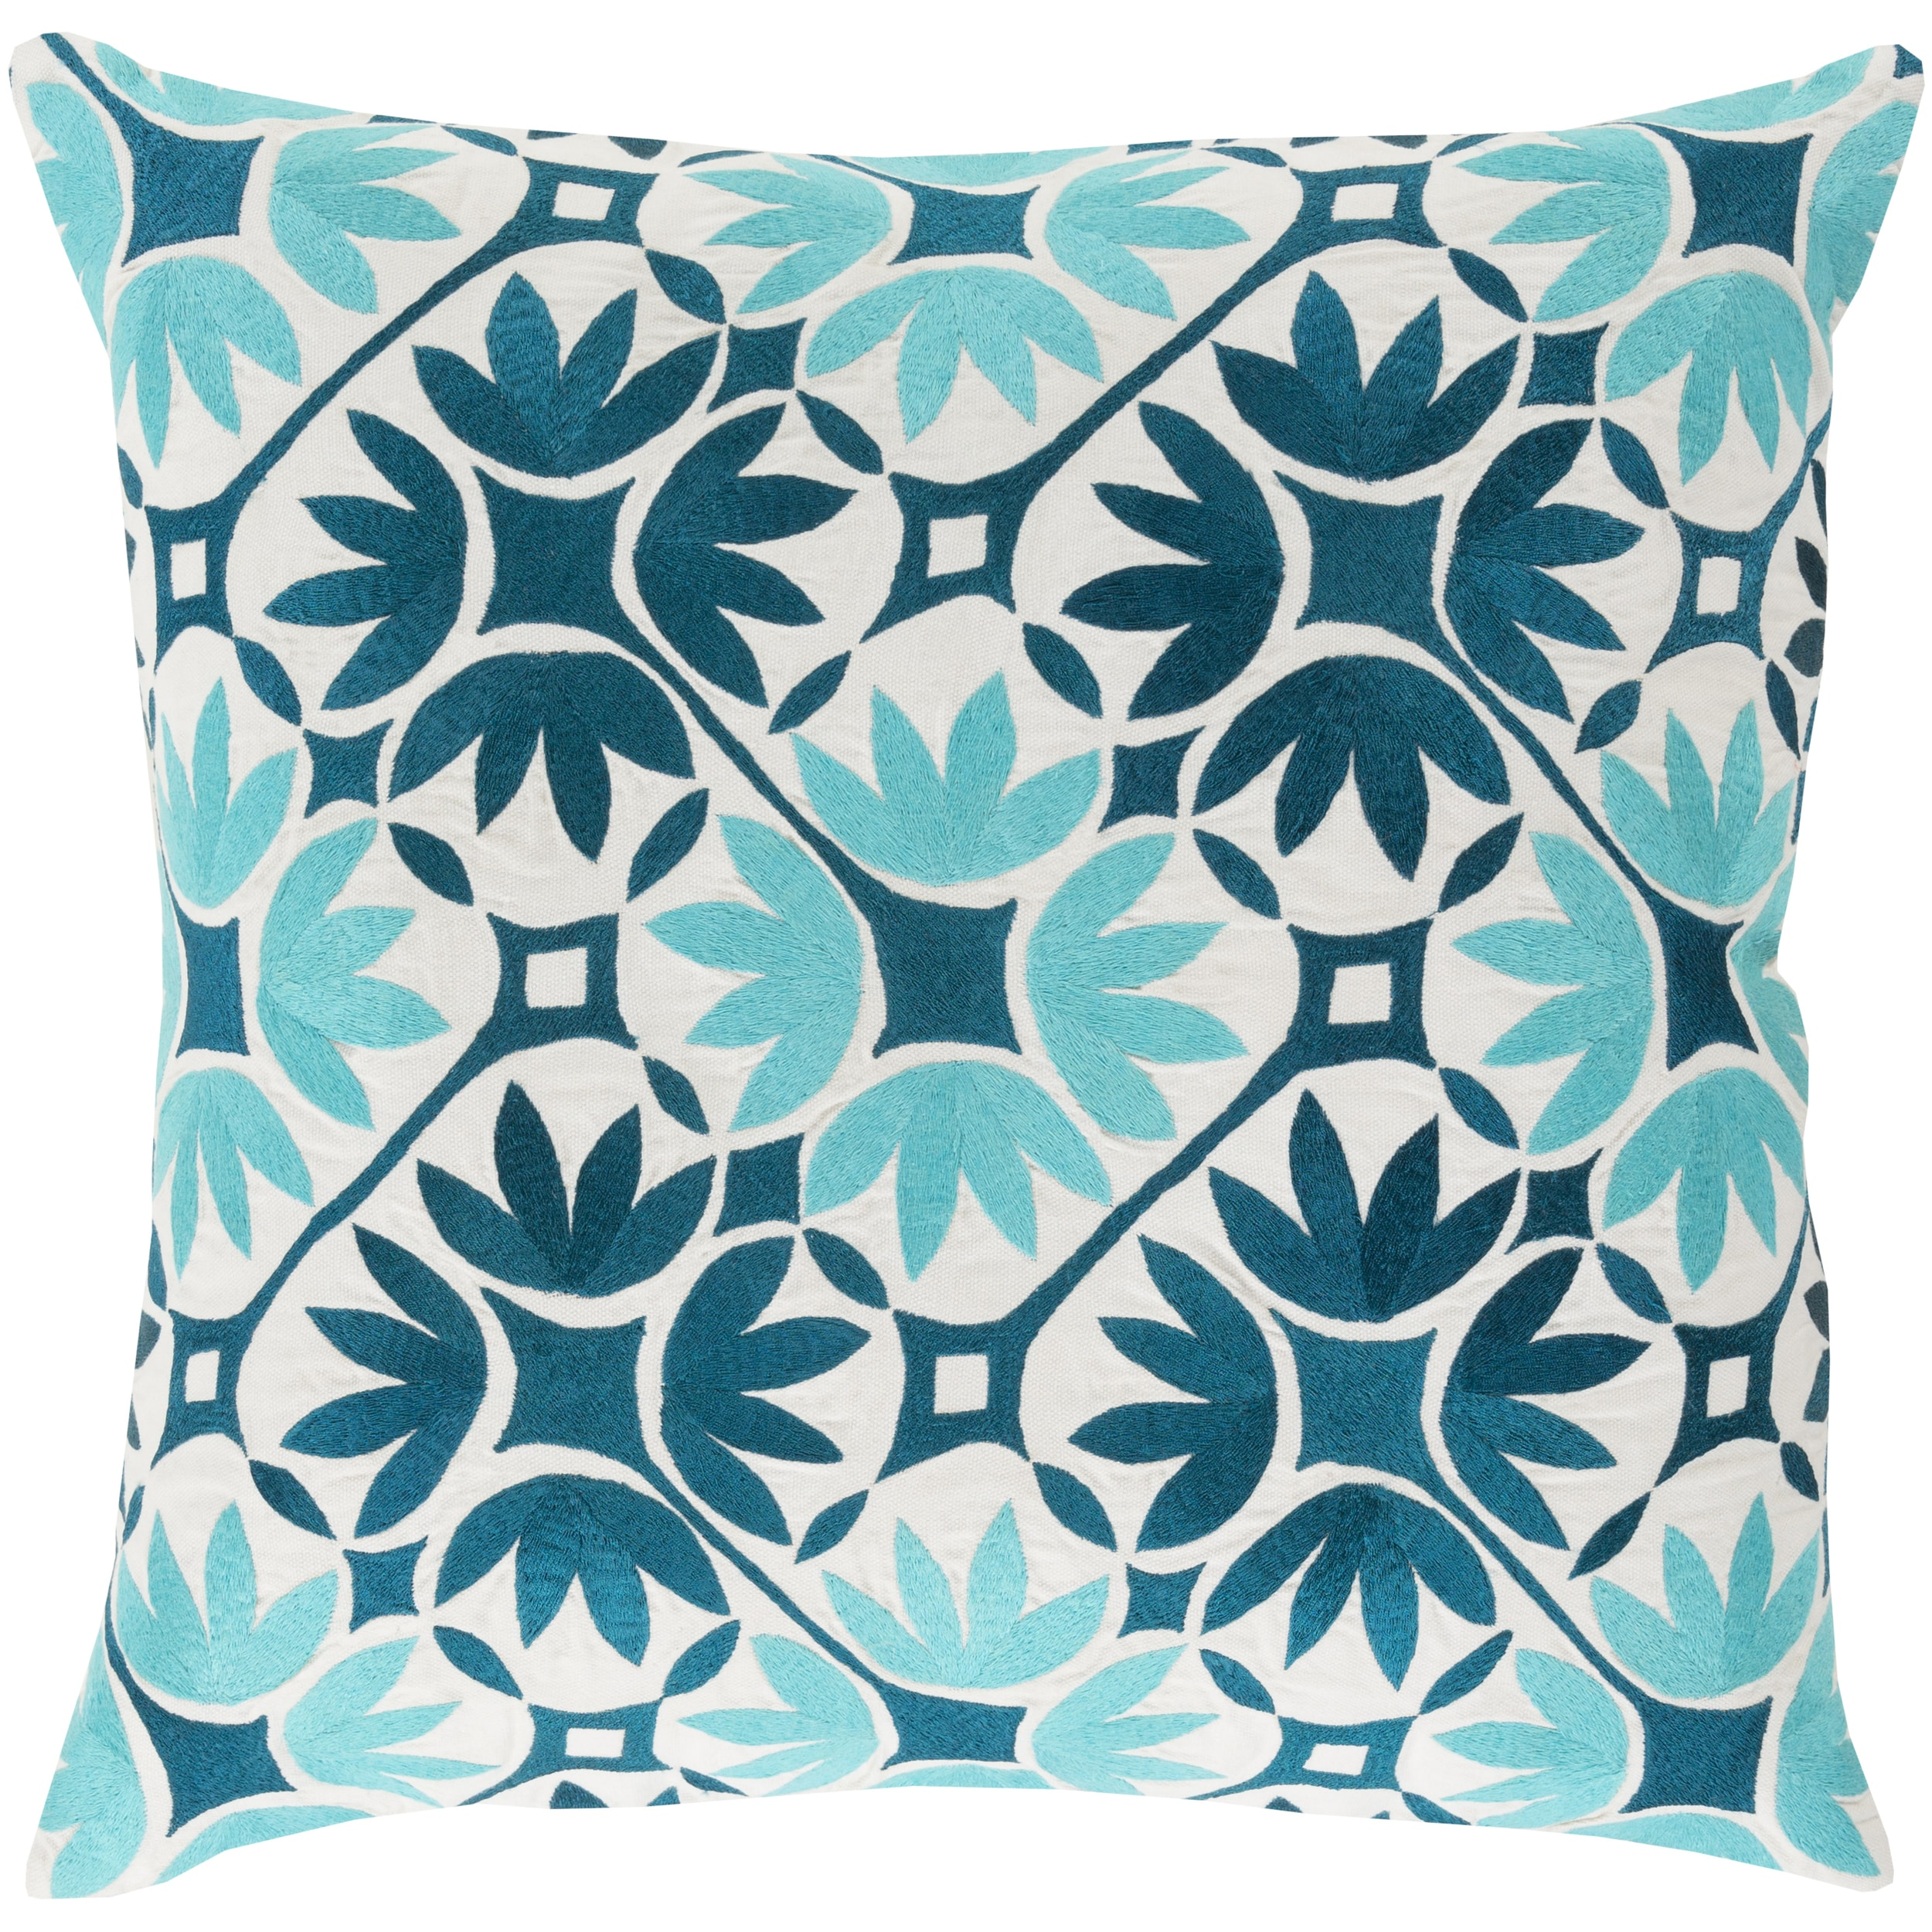 Decorative Carole Floral 22-inch Throw Pillow (Down)